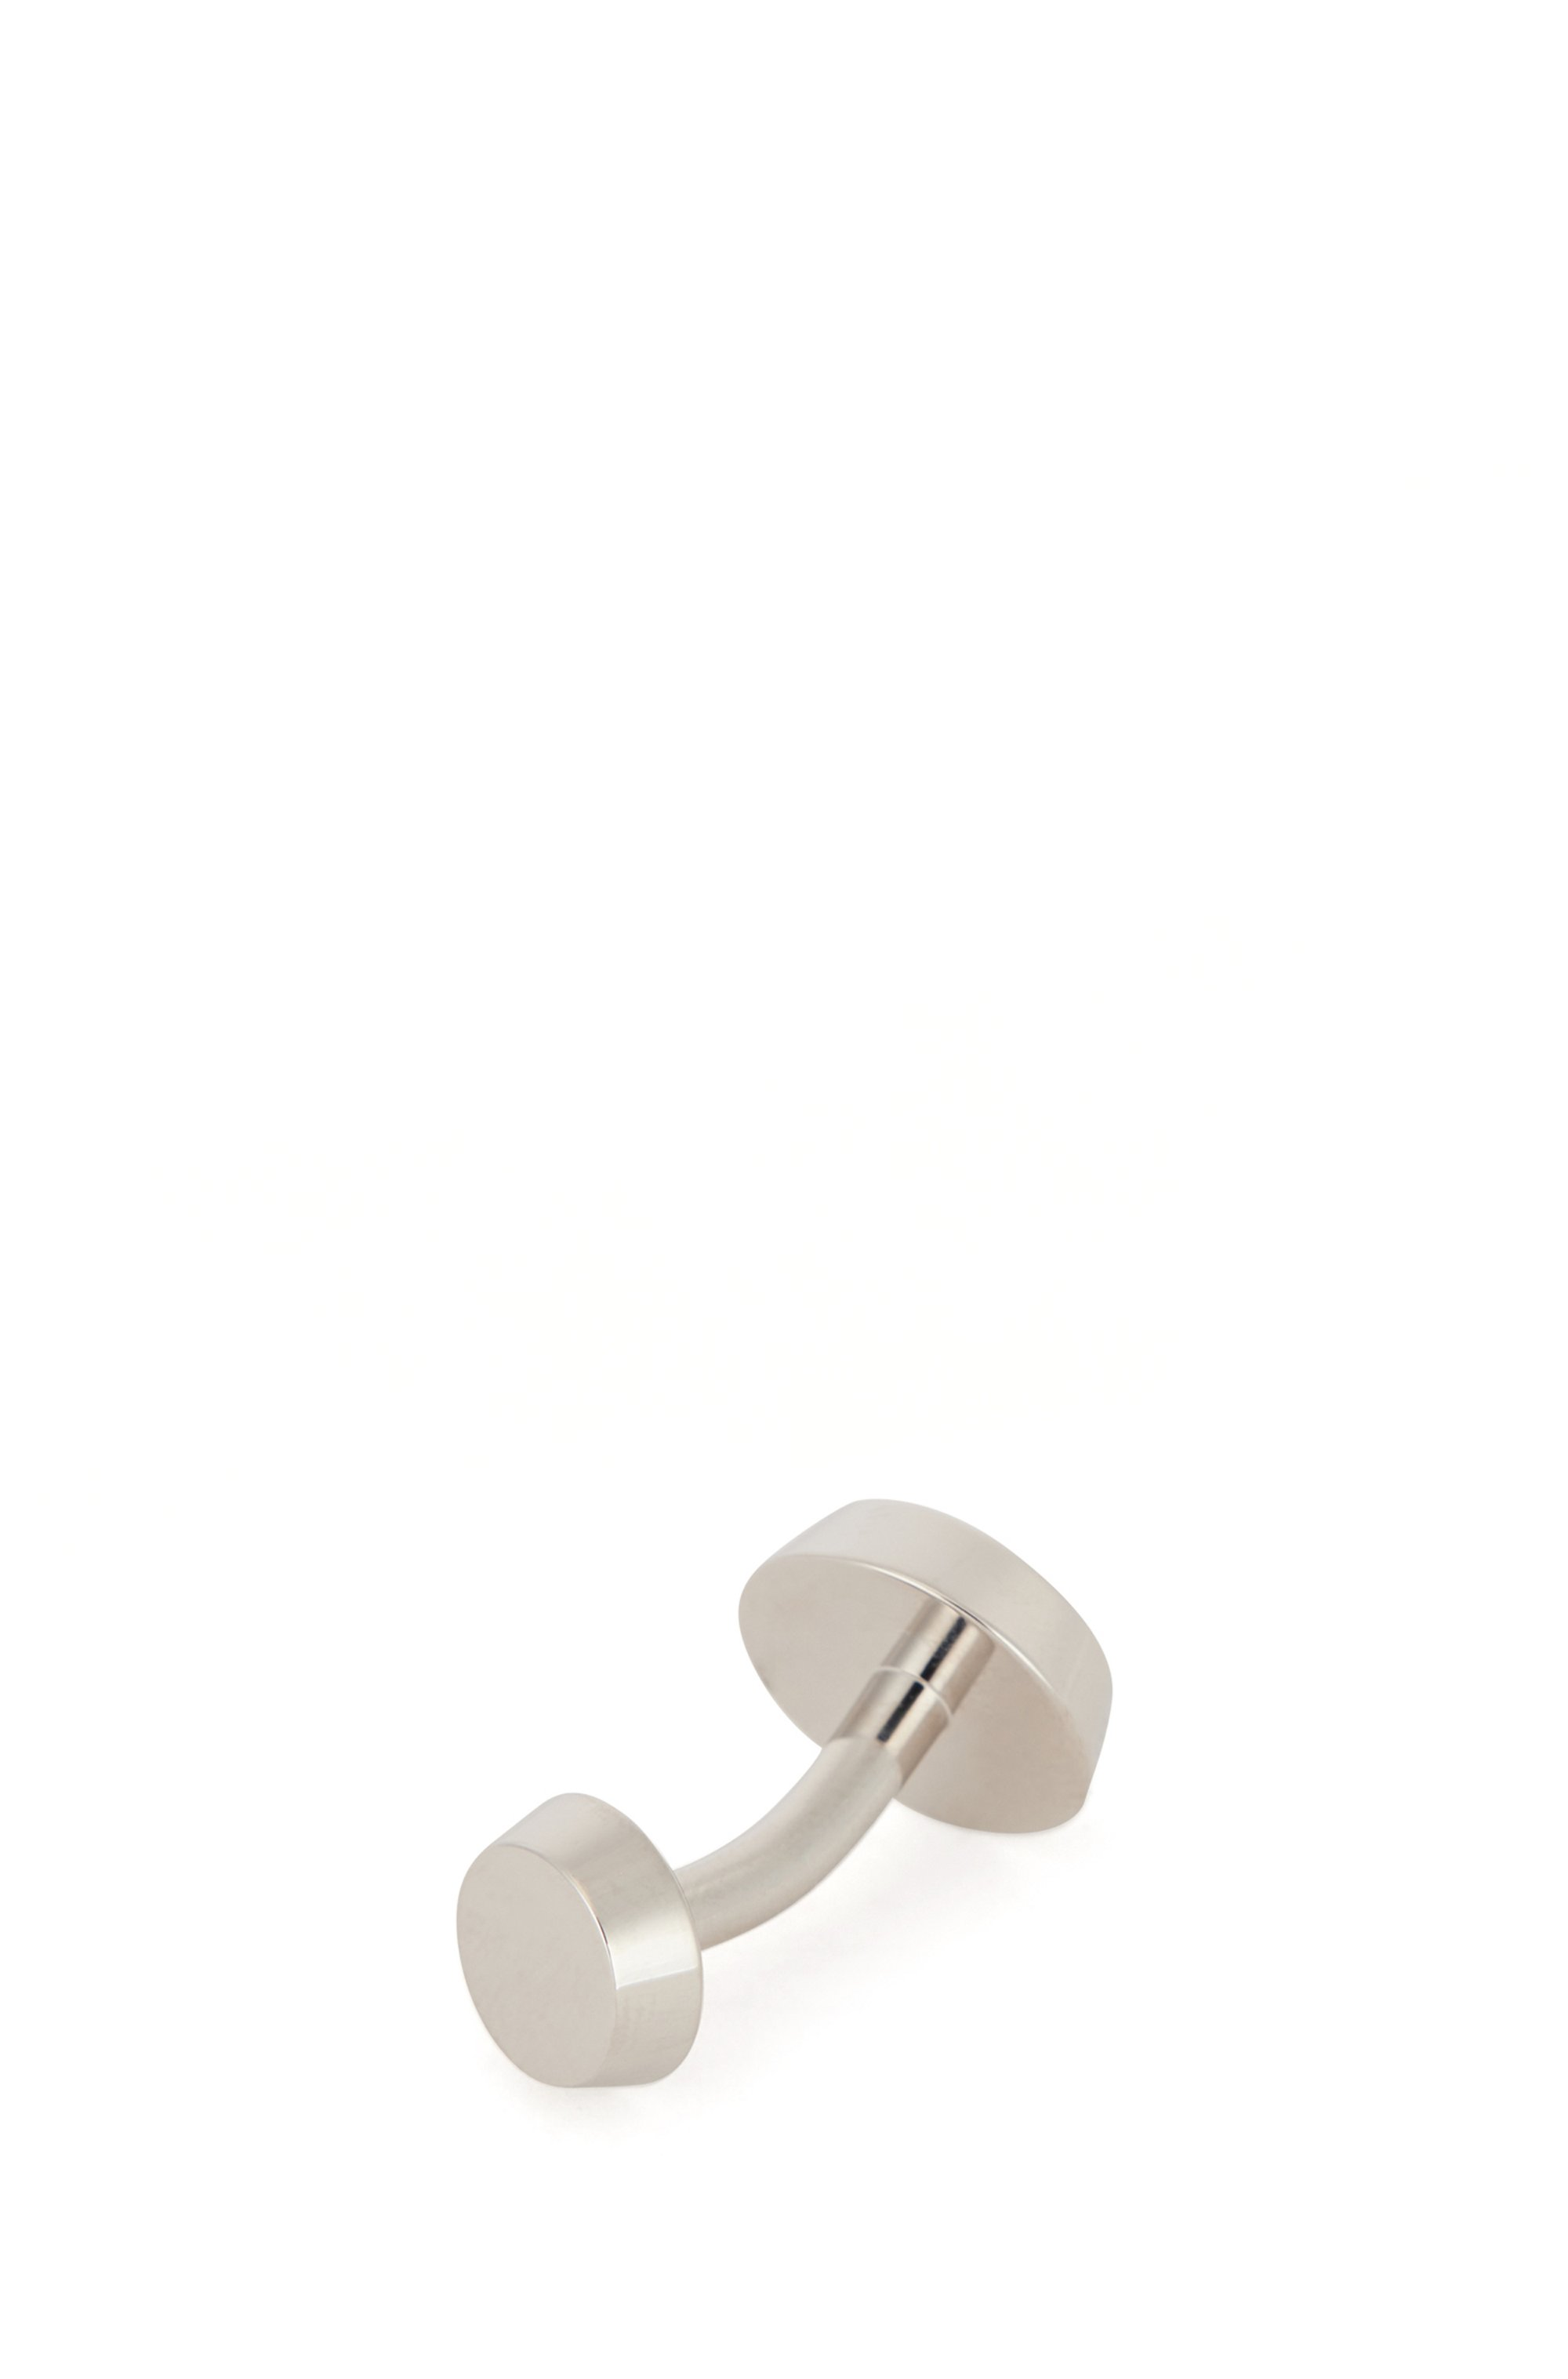 Round cufflinks with enamel insert and engraved logo